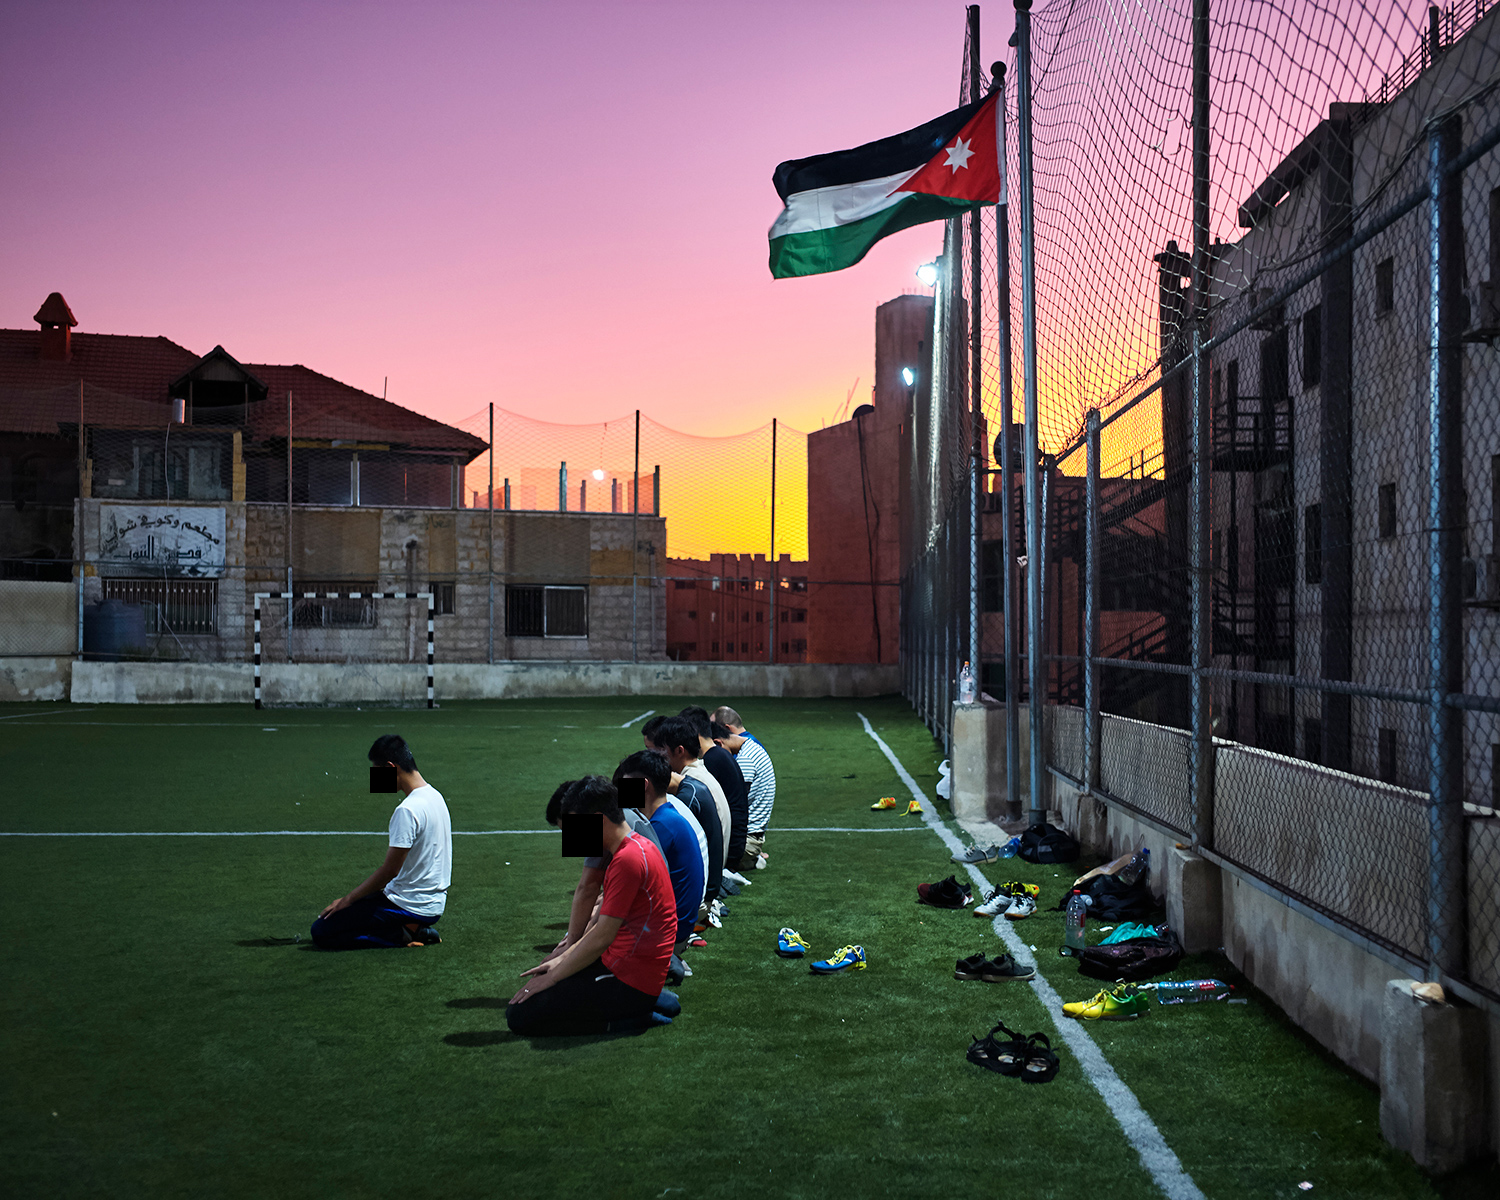 Umar and other Chinese Muslim students pray on a soccer field during a game, in Amman, September 2017.